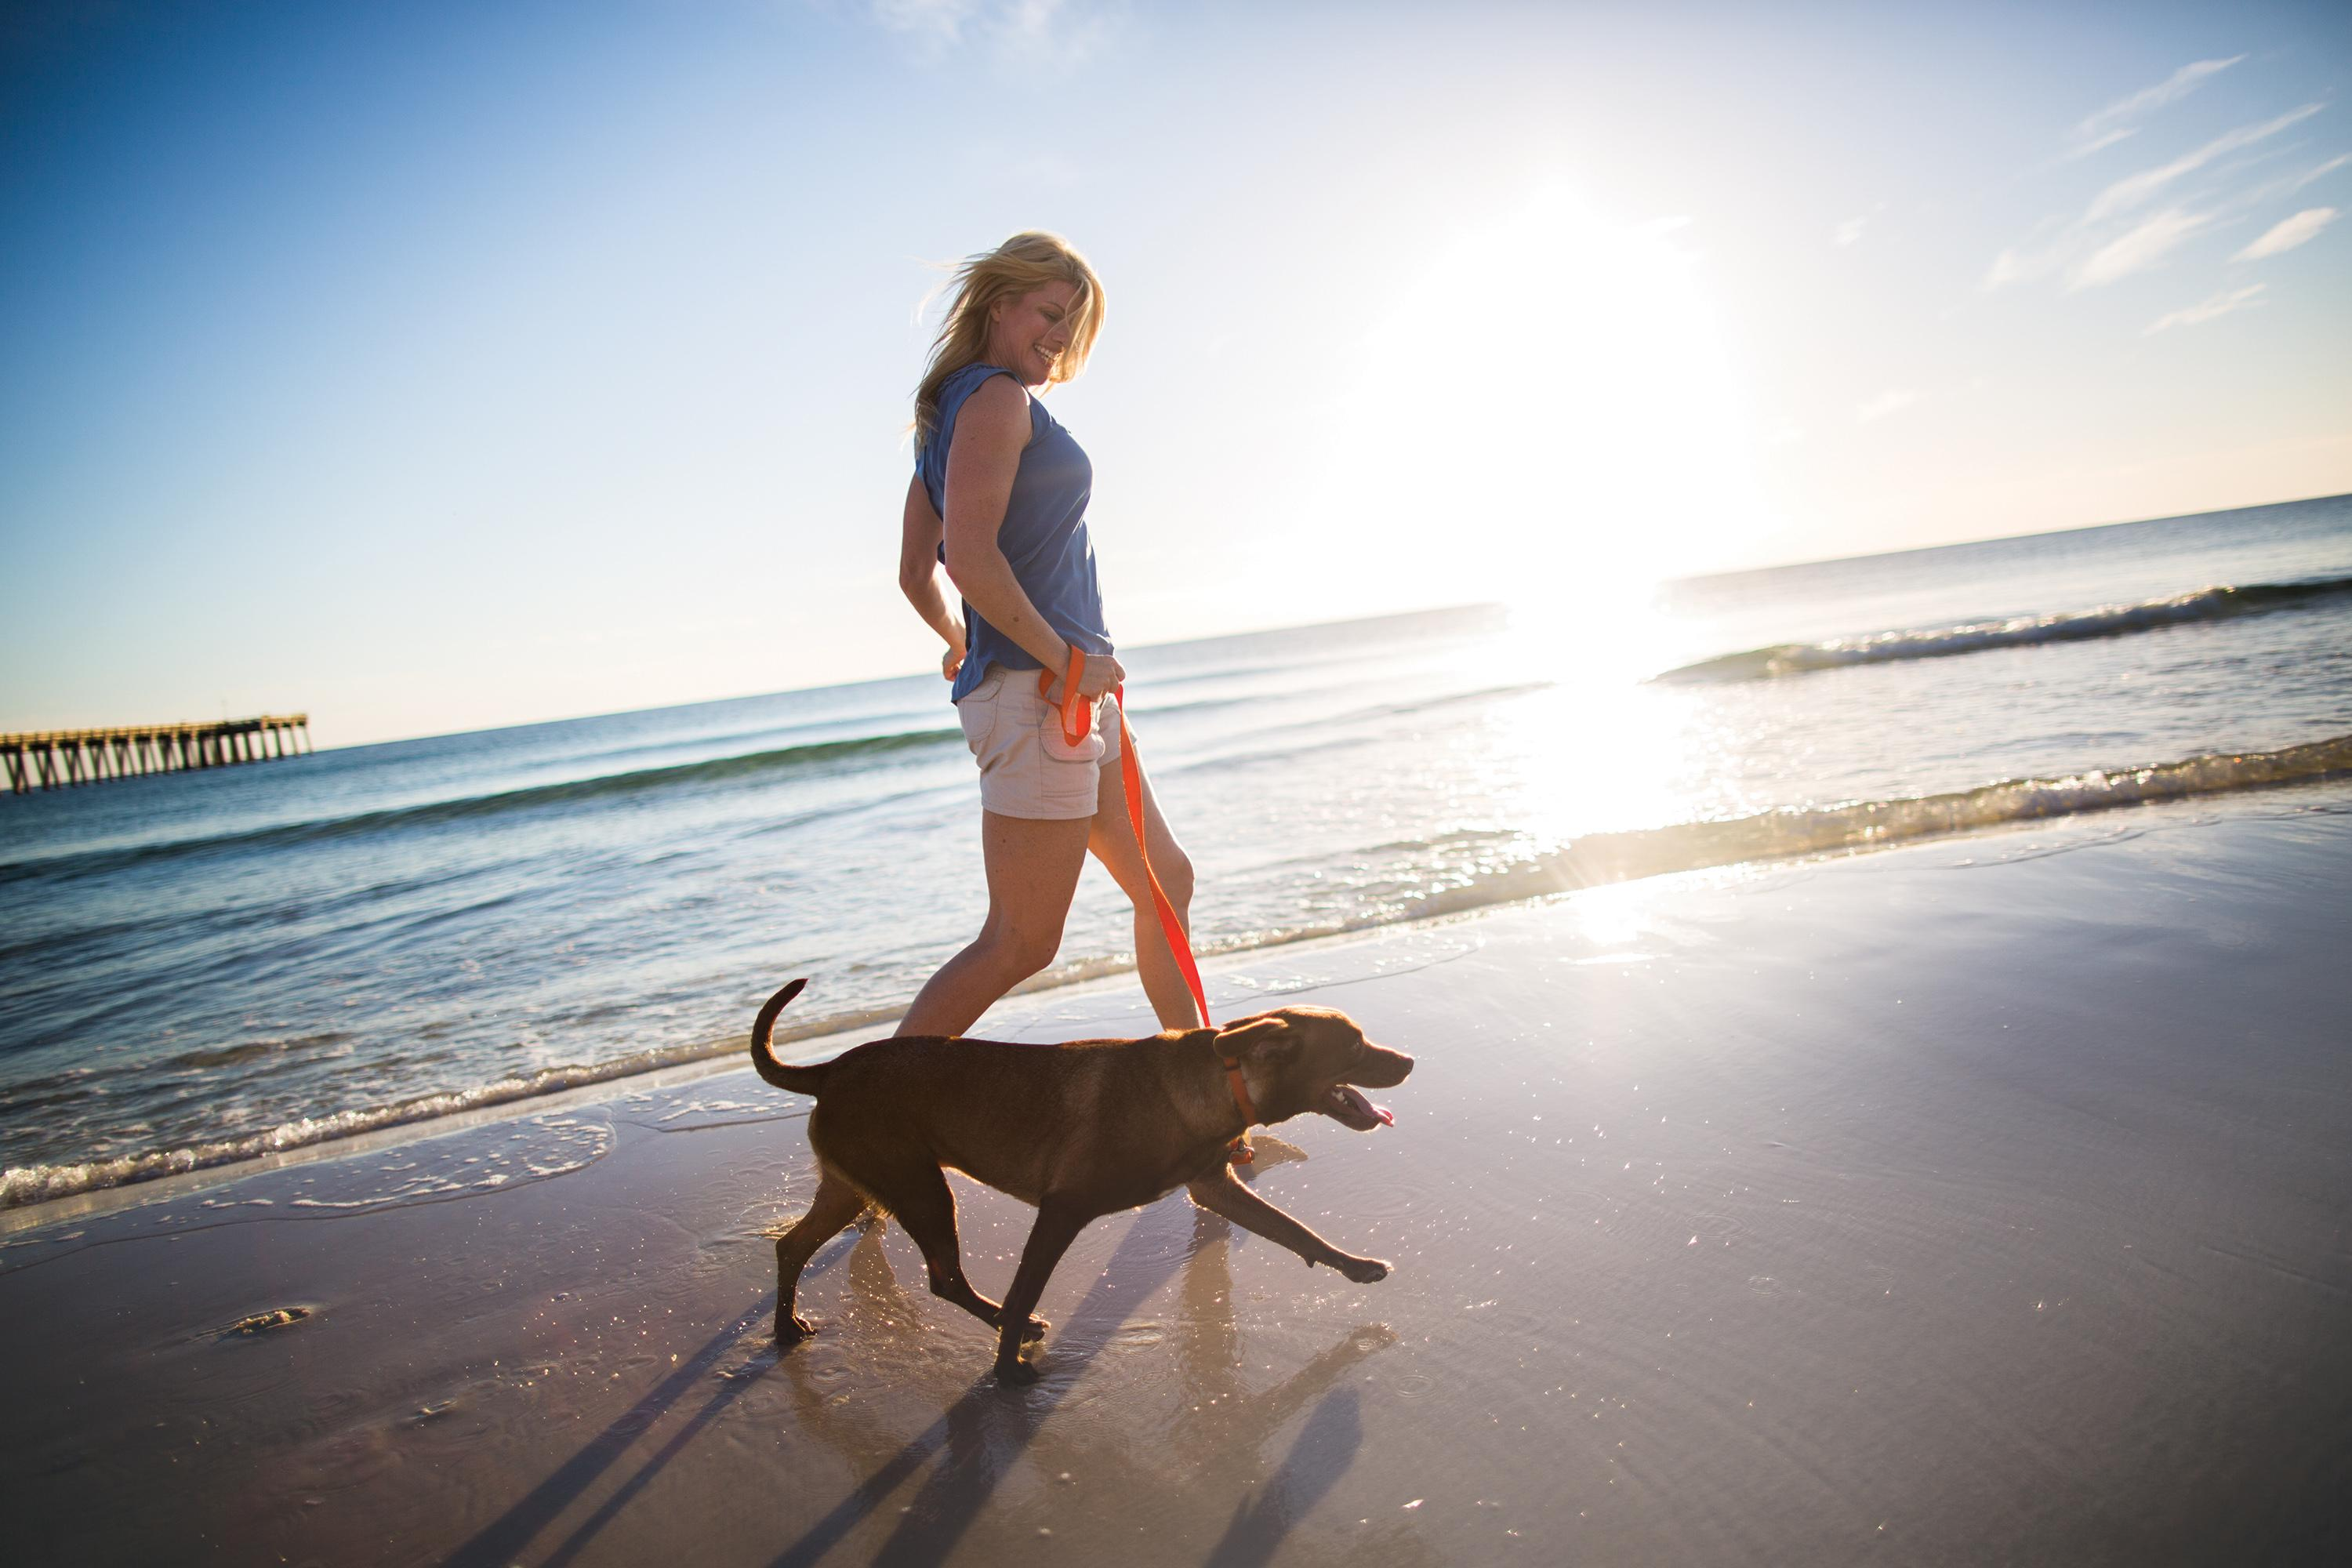 There's fun for all in Panama City Beach - even your favorite furry friend!